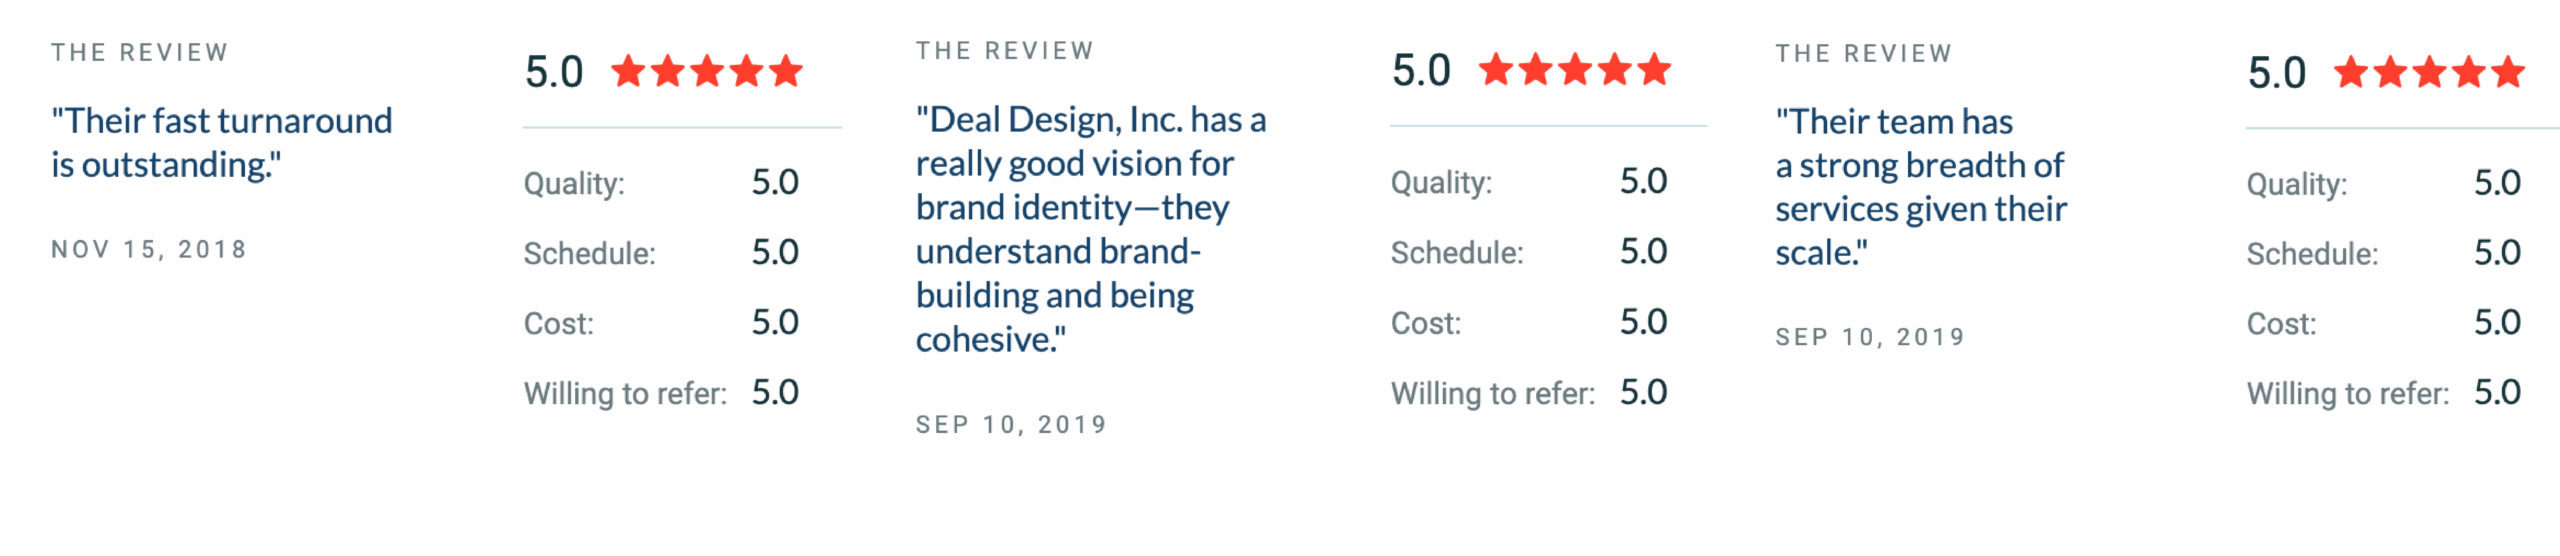 Deal Design's reviews on Clutch